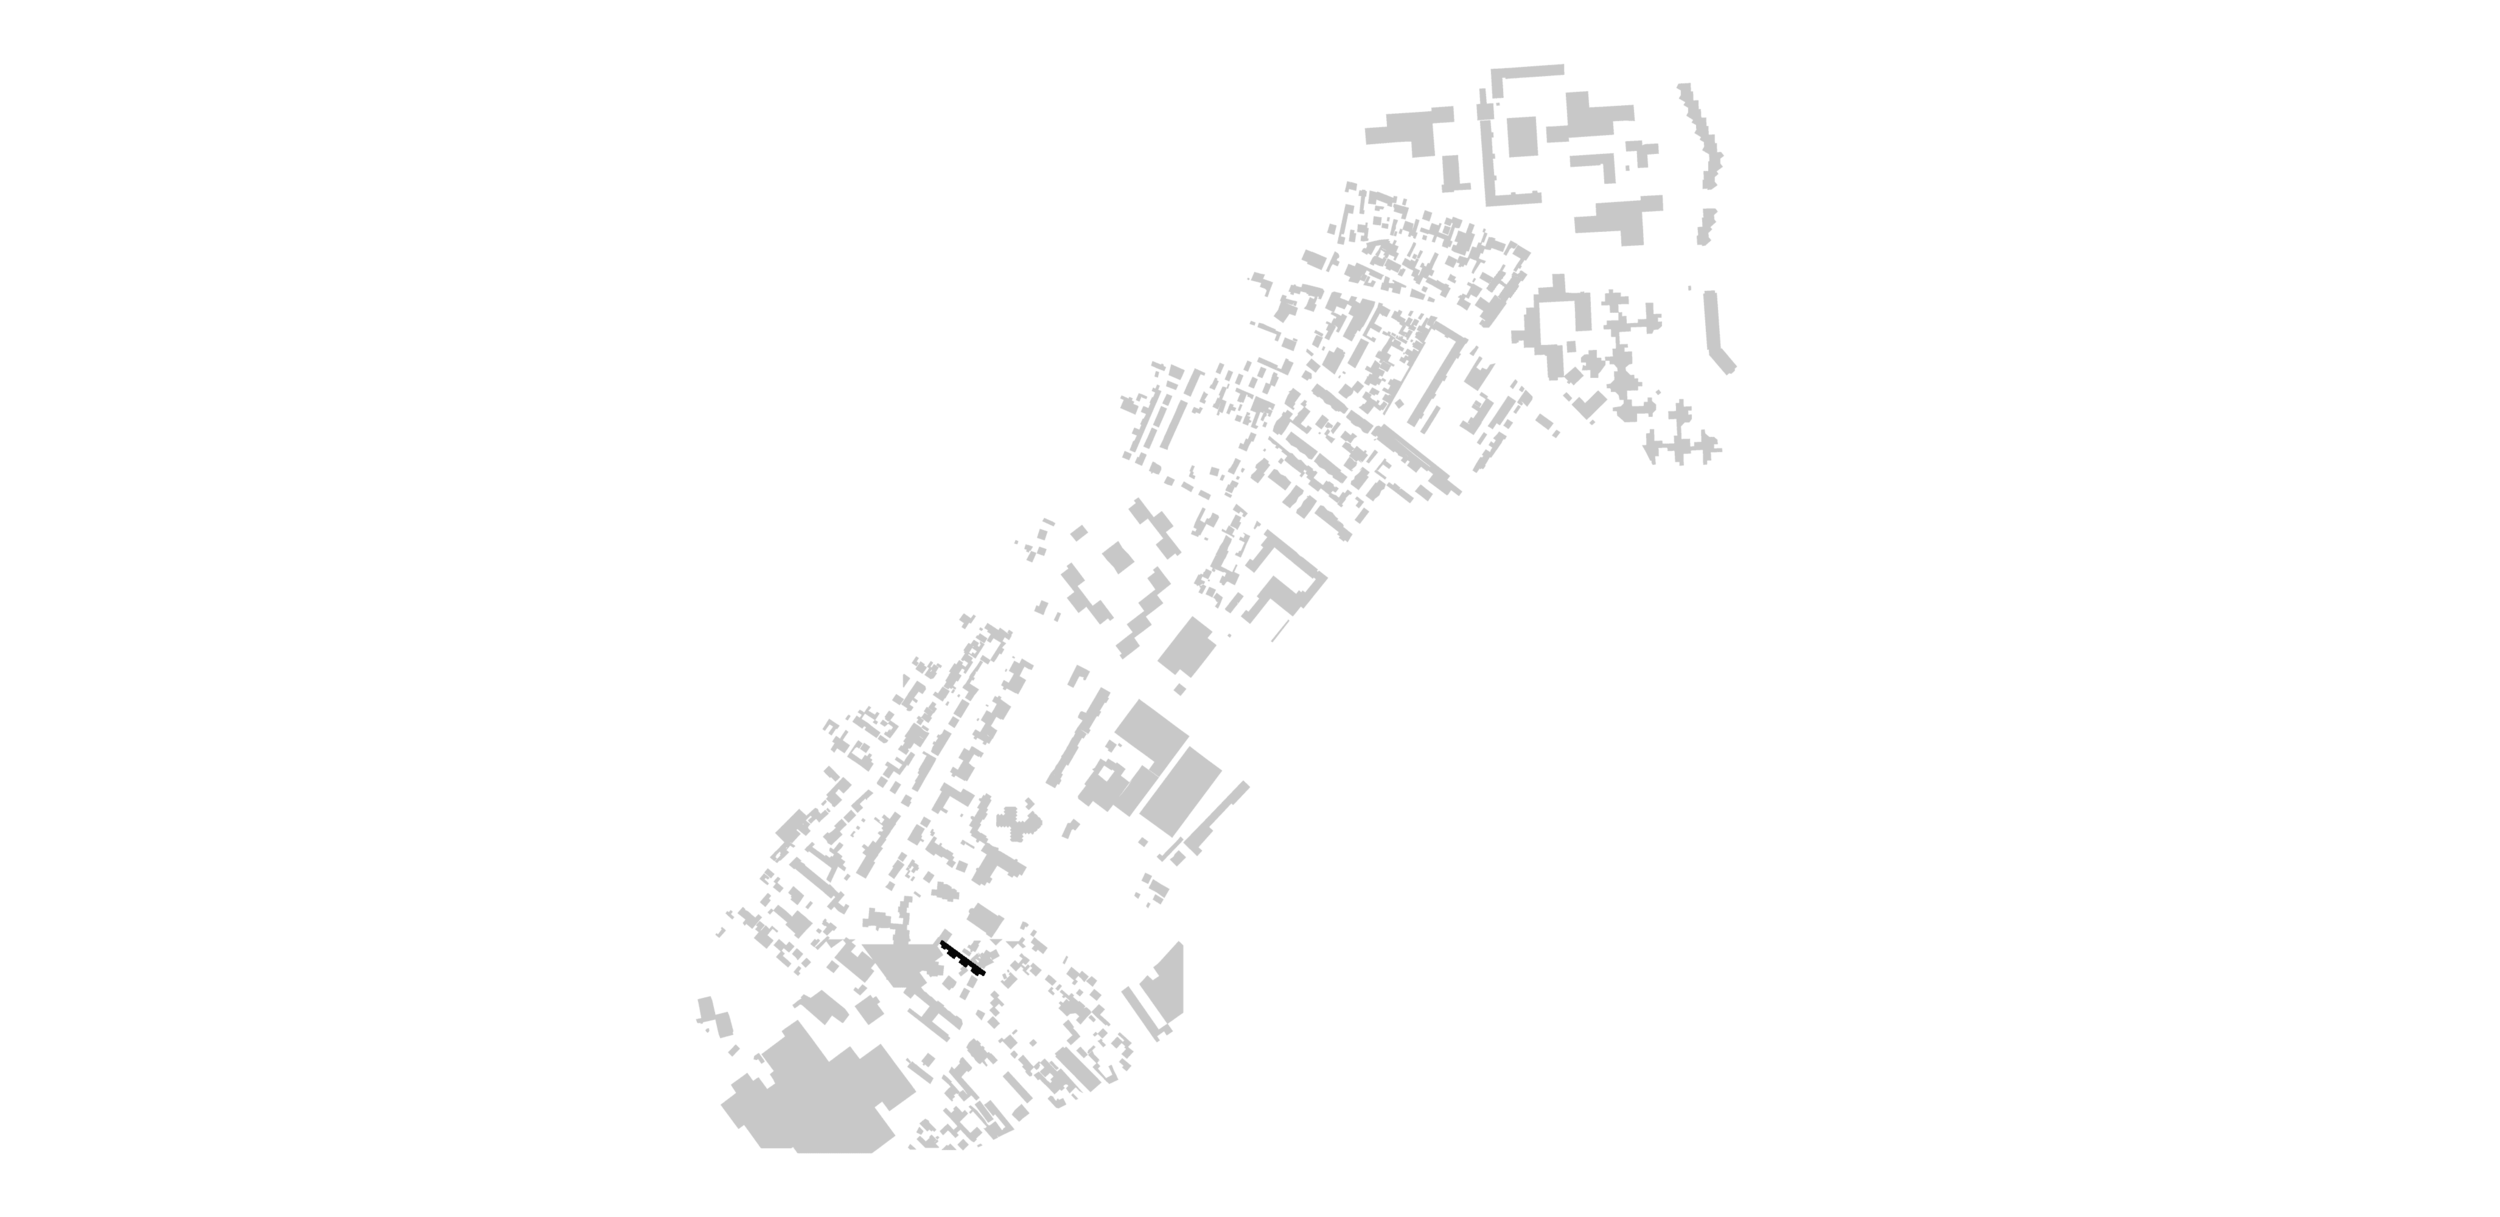 Montreuil-Branly-Plan-situation.png